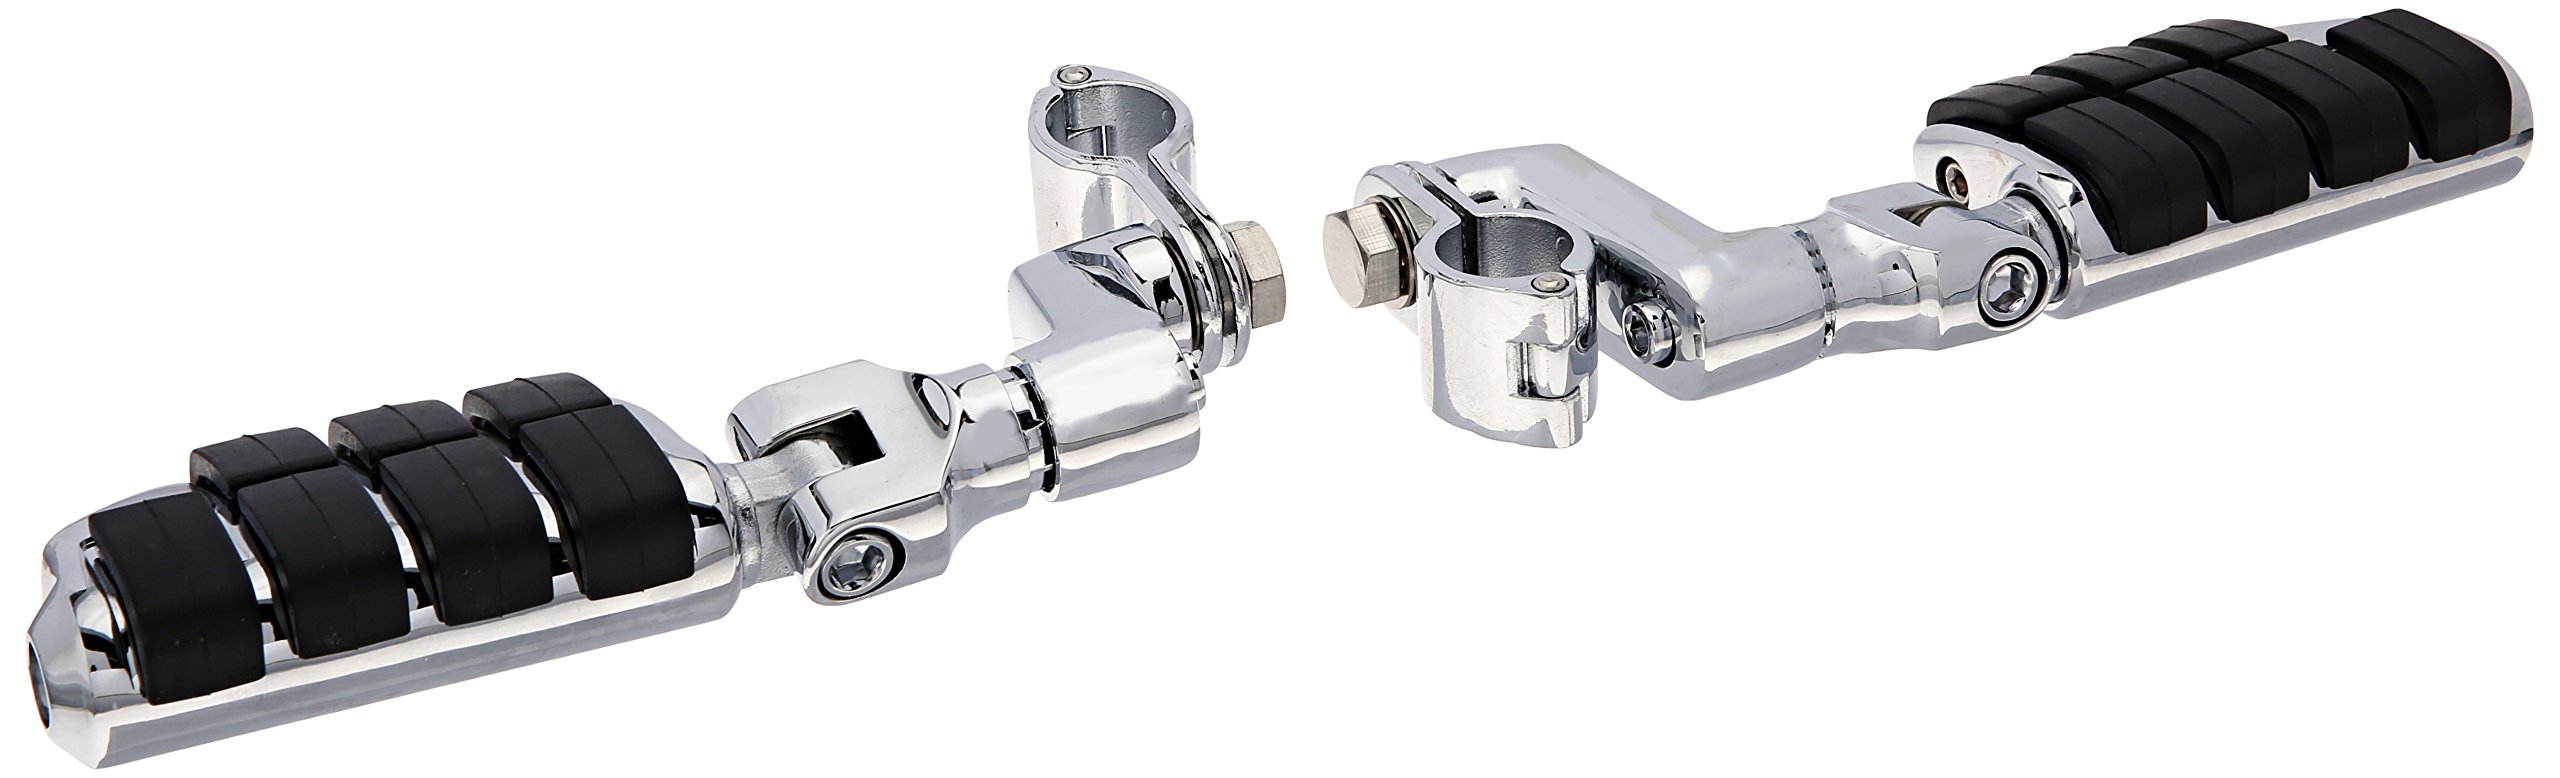 Kuryakyn 7976 Offset Dually ISO-Peg with 1'' Clamps